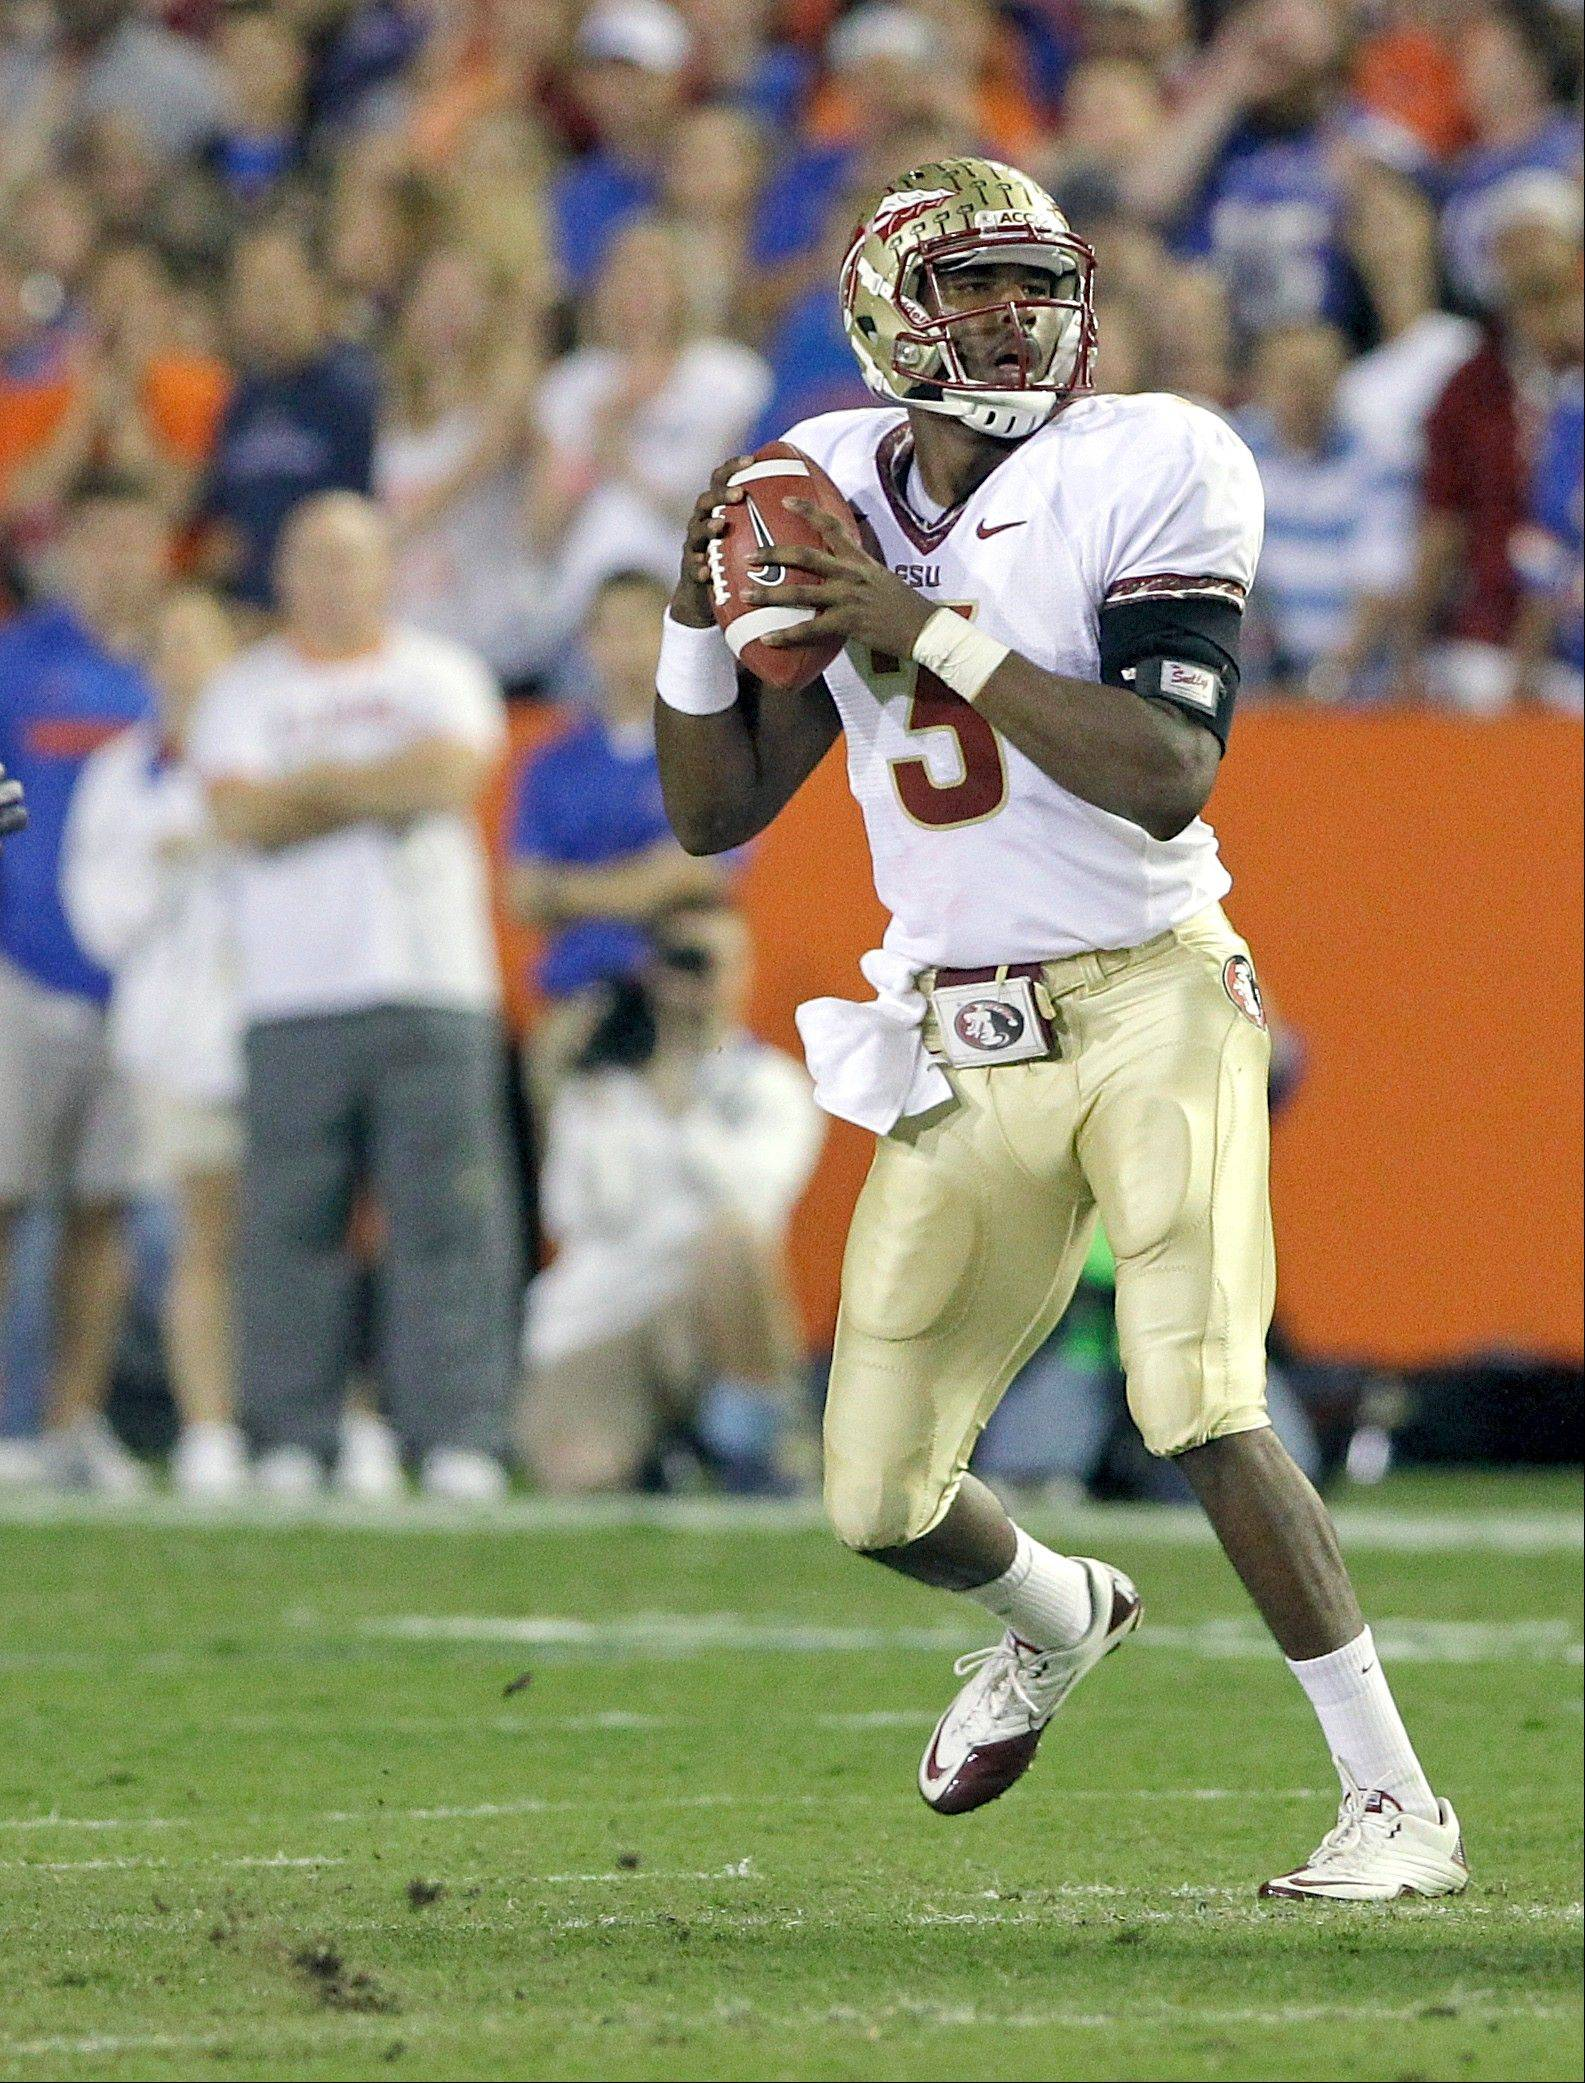 With his mother battling breast cancer, Florida State quarterback EJ Manuel has endured a difficult year. He'll lead the Seminoles against Northern Illinois in Tuesday's Orange Bowl clash.